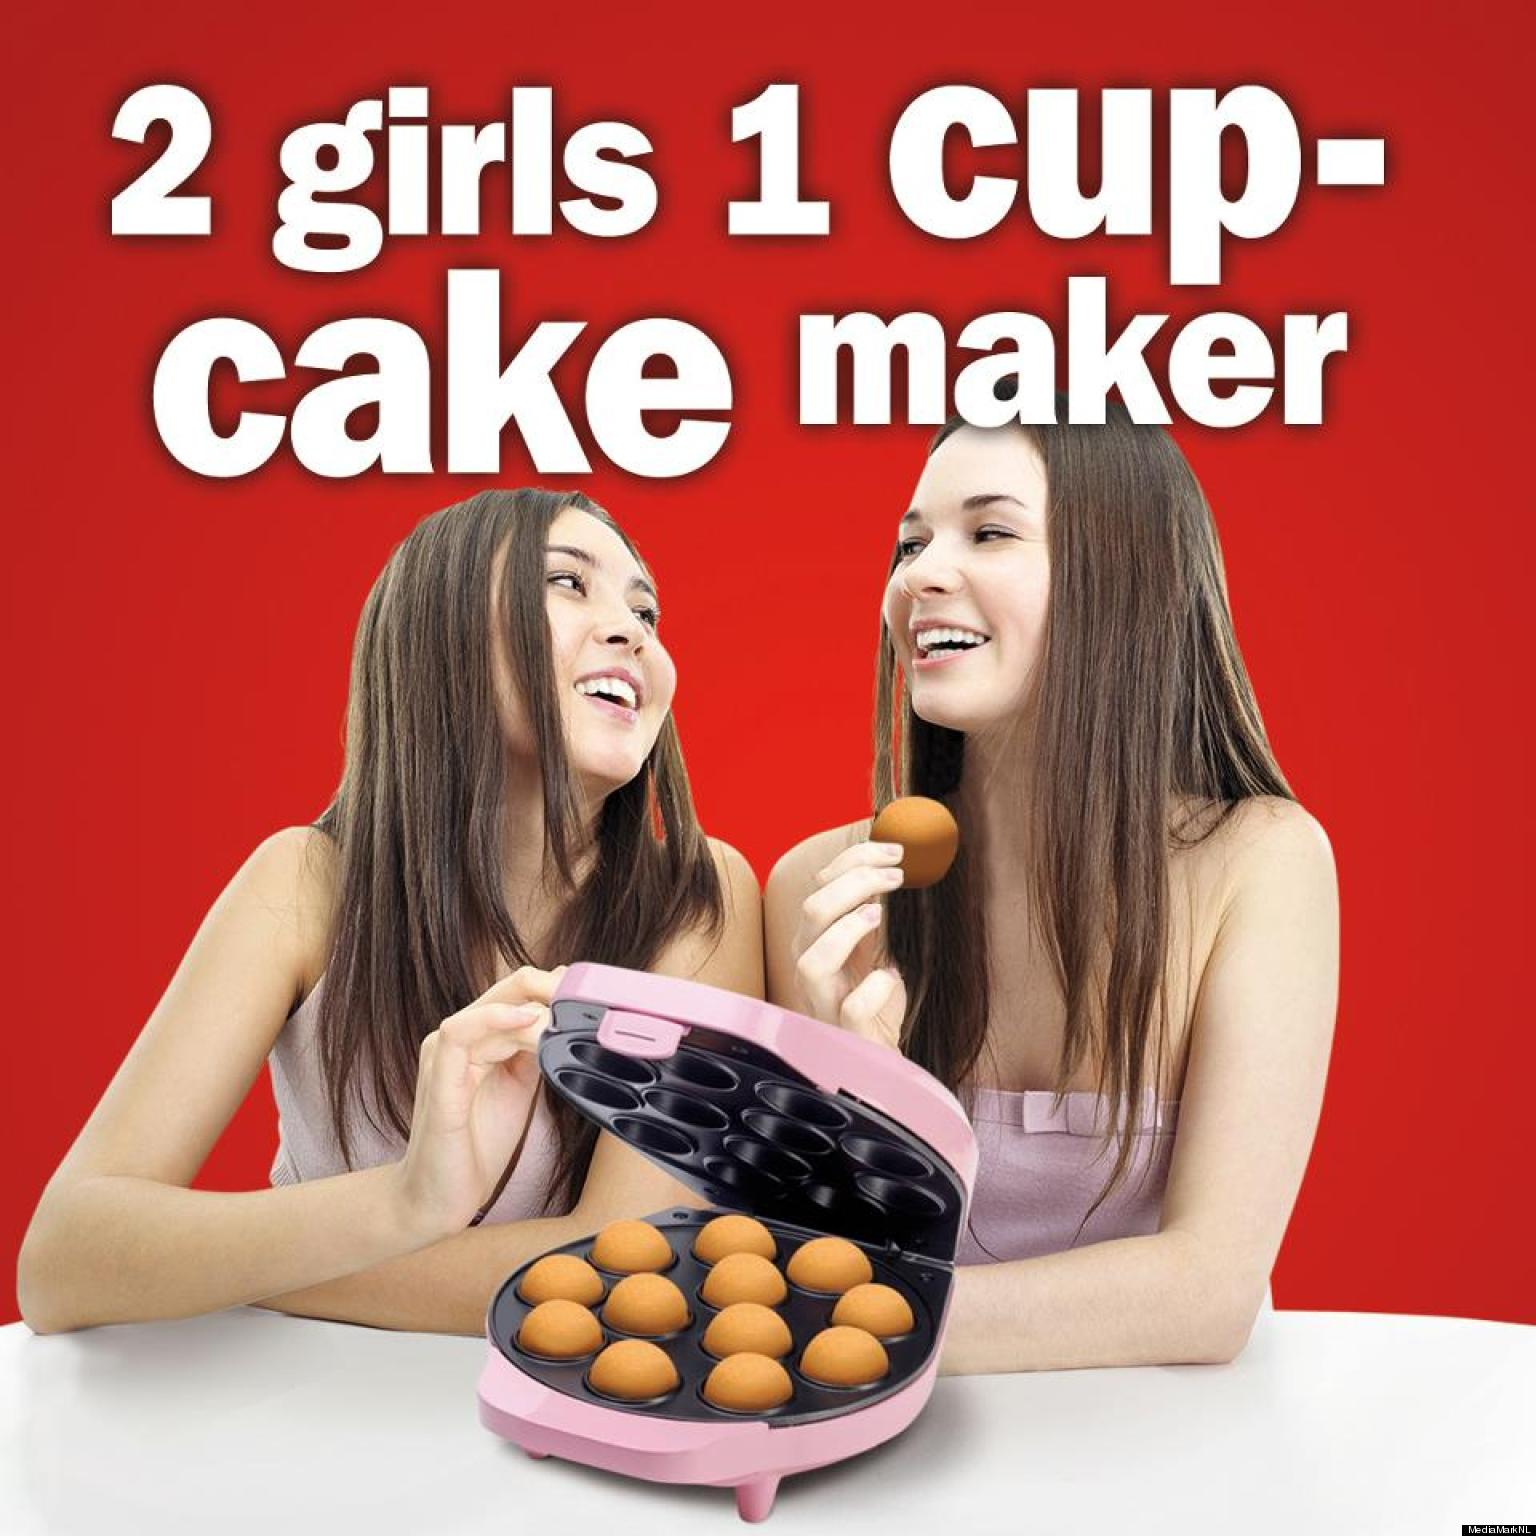 2 girl 1 cup